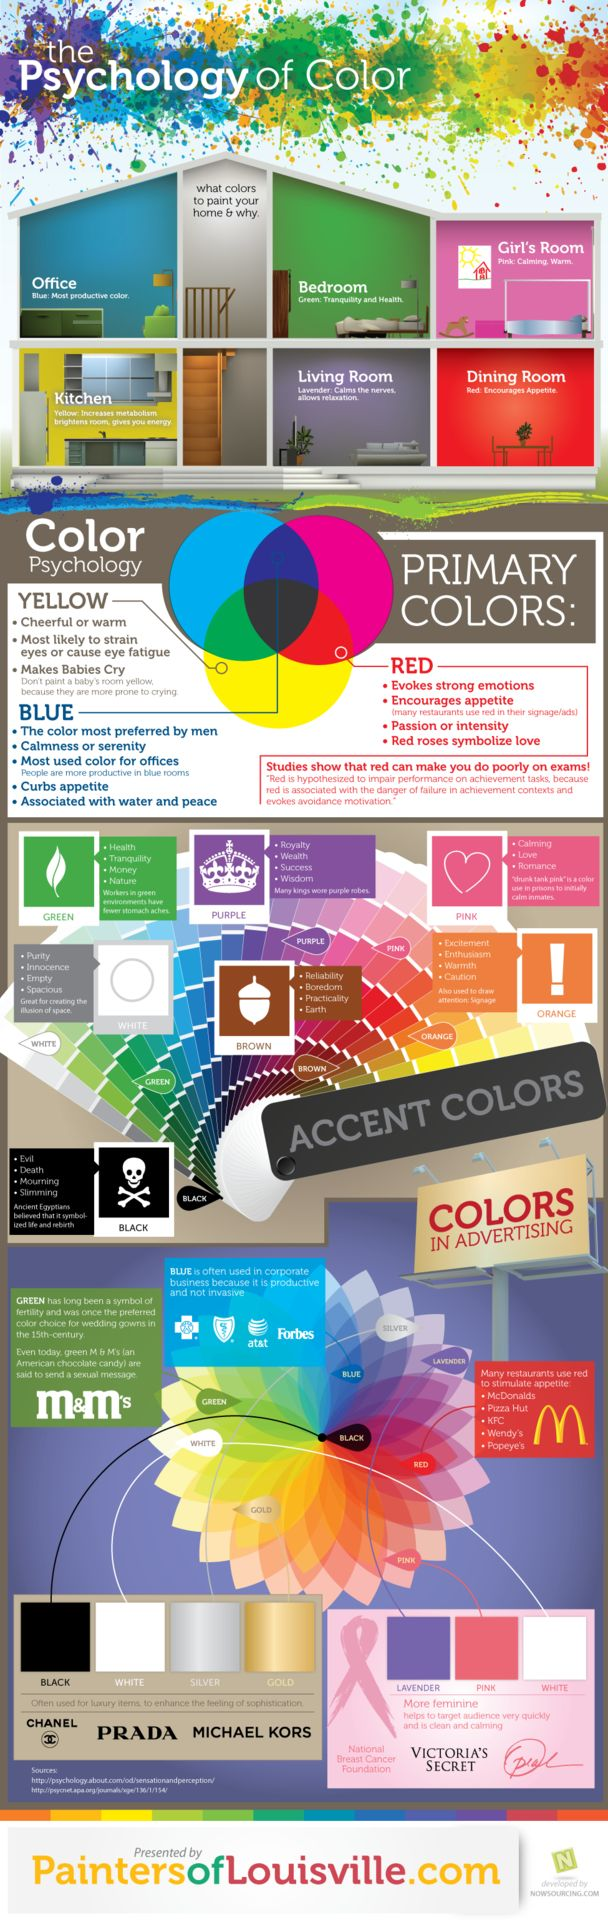 Psychology Of Color: I totally agreePicture source